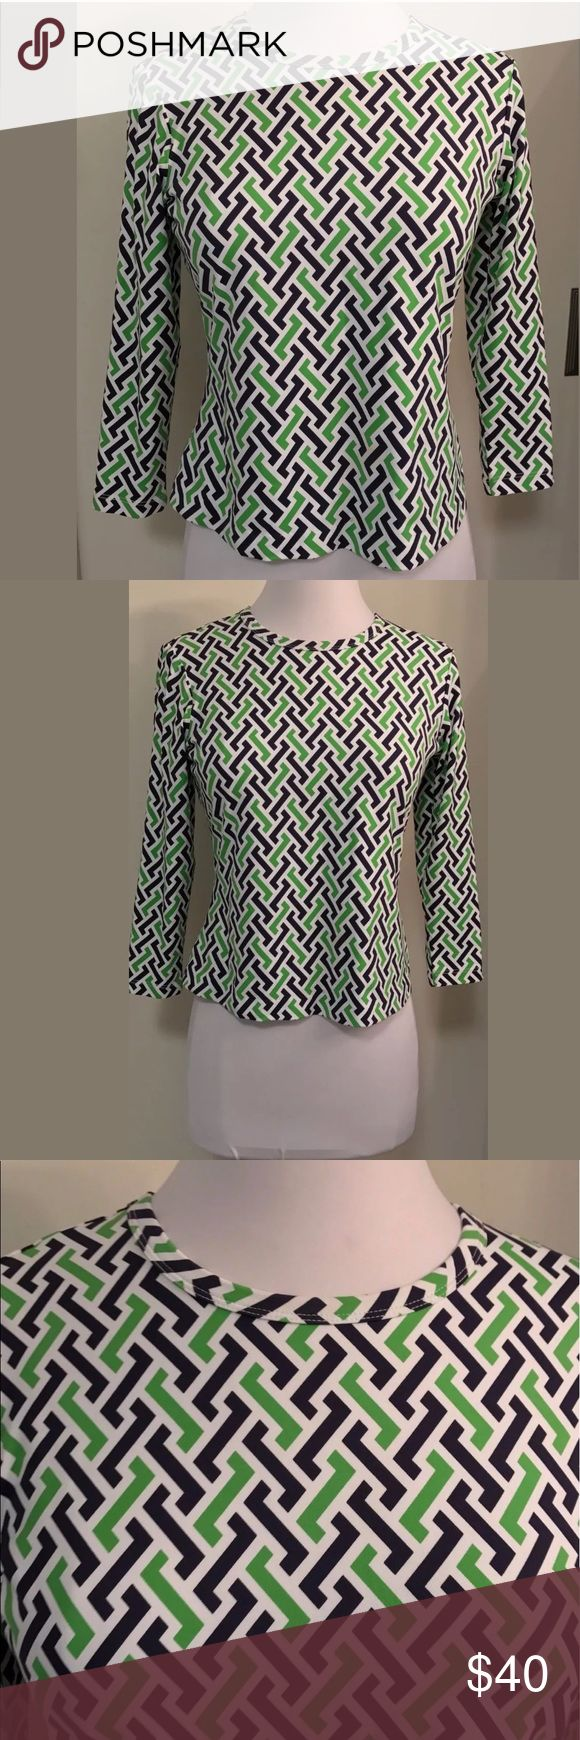 "J McLaughlin signature top 3/4 sleeves J McLaughlin Size XS 91% nylon, 9% spandex  Pullover style White with navy and lime green geo print Excellent condition 100% authentic  Approx. Measurements  (flat/unstretched) Under arms across the back 18"" Shoulder to hem down the back 19"" Around bottom hem 34 ""  Shoulder to end of sleeve 17.5 "" j mclaughlin Tops"